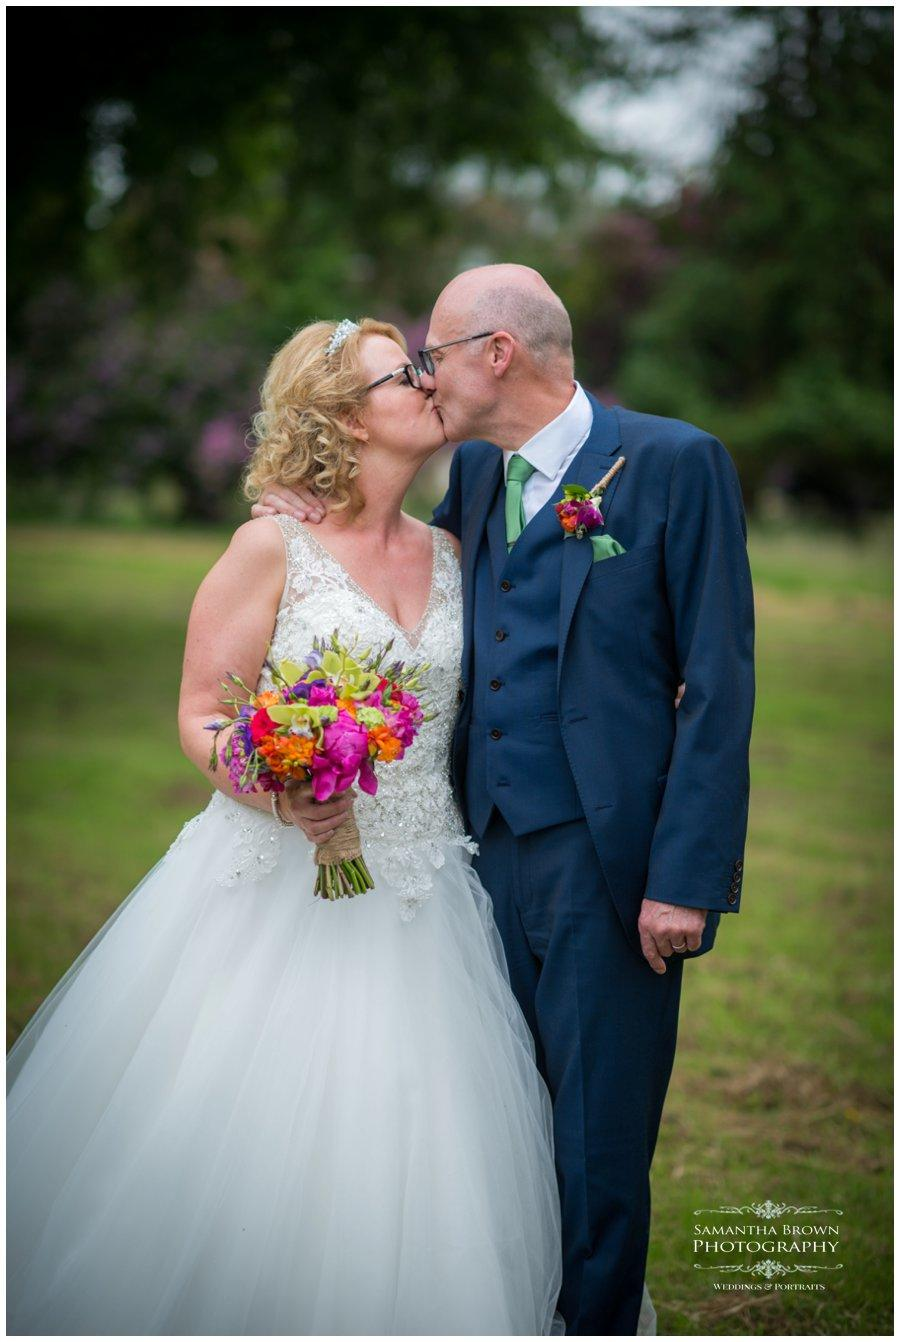 wedding-photography-liverpool-by-samantha-brown_0140